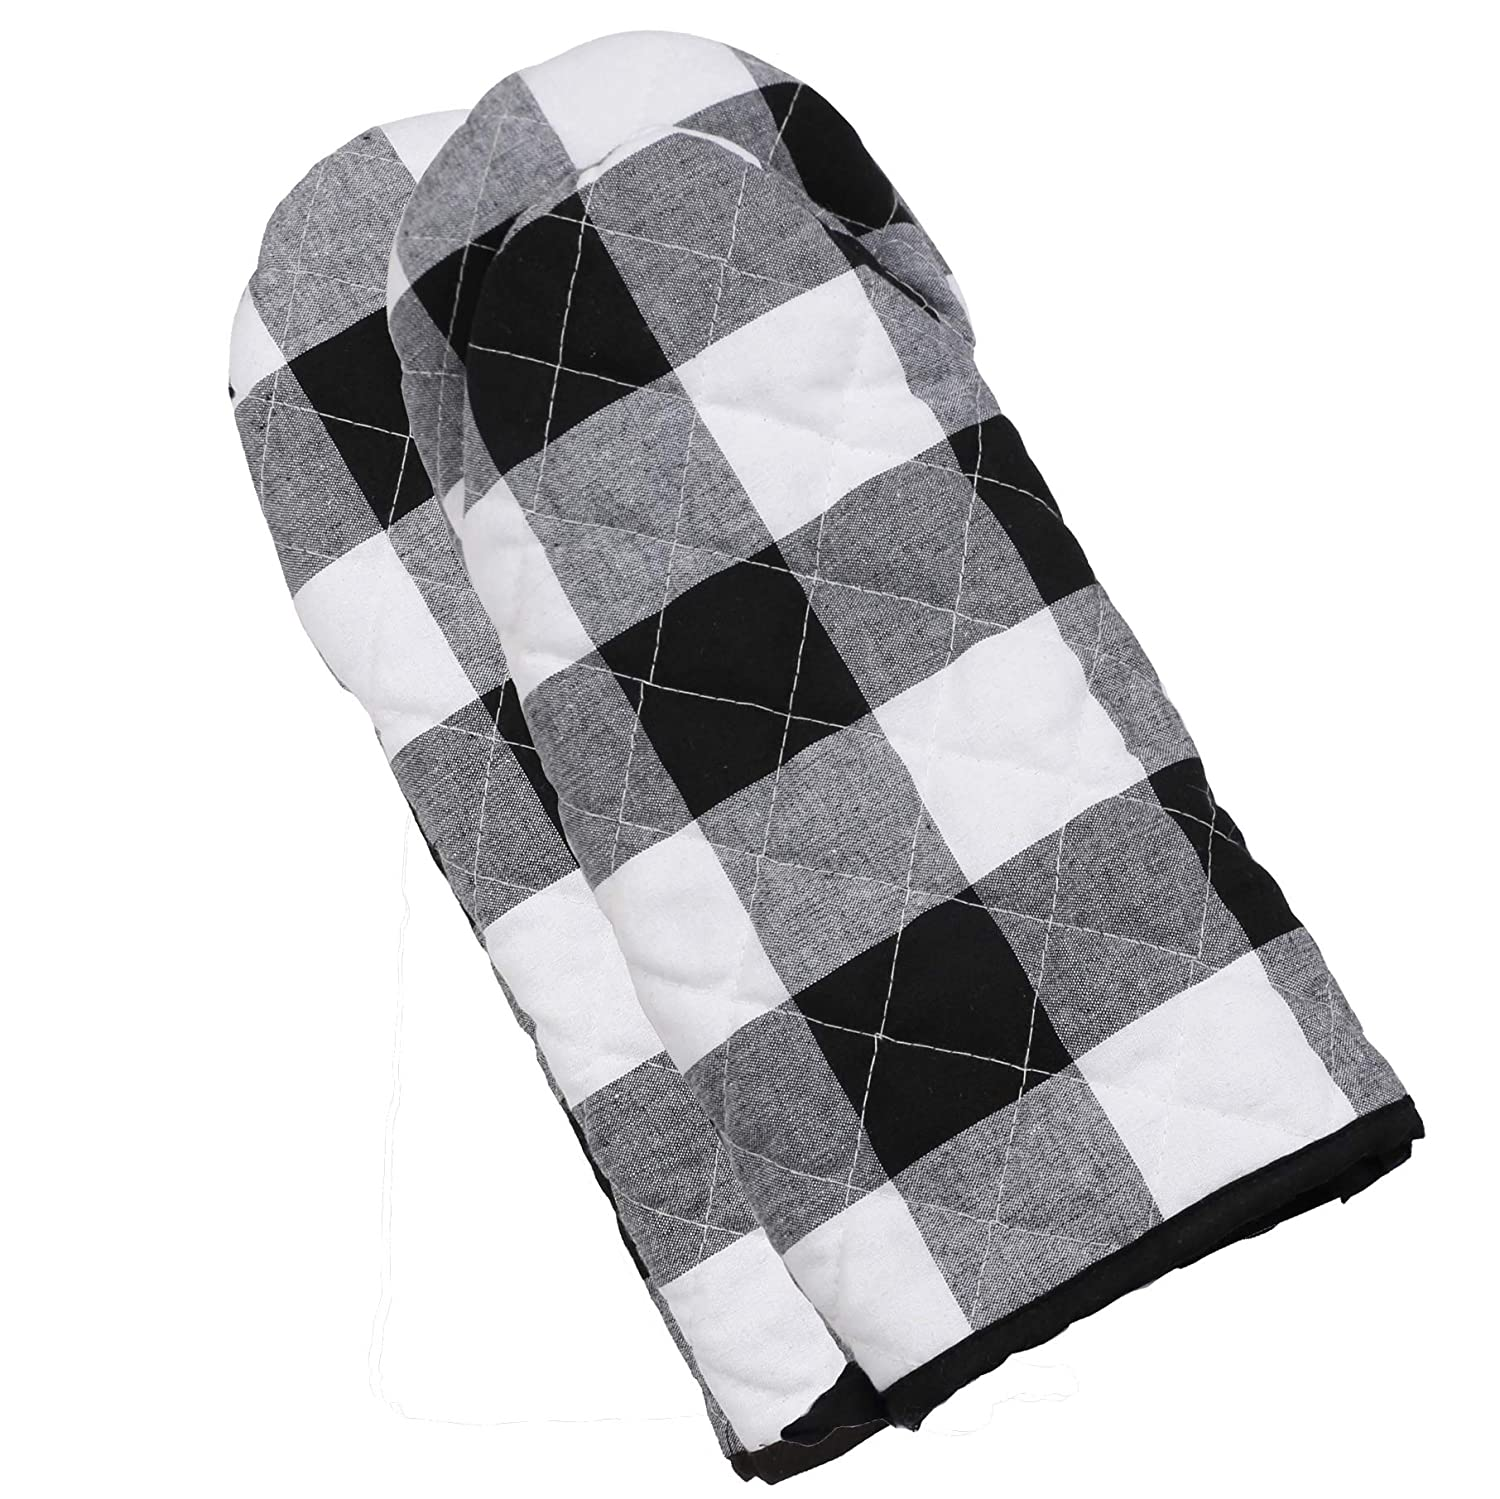 famibay 1 Pair Cotton Linen Plaid Oven Mitts Classic Checker Extended Heat Resistant Potholder Microwave Oven Glove for Kitchen Cooking, Baking & BBQ - Black & White 13.5 Inch